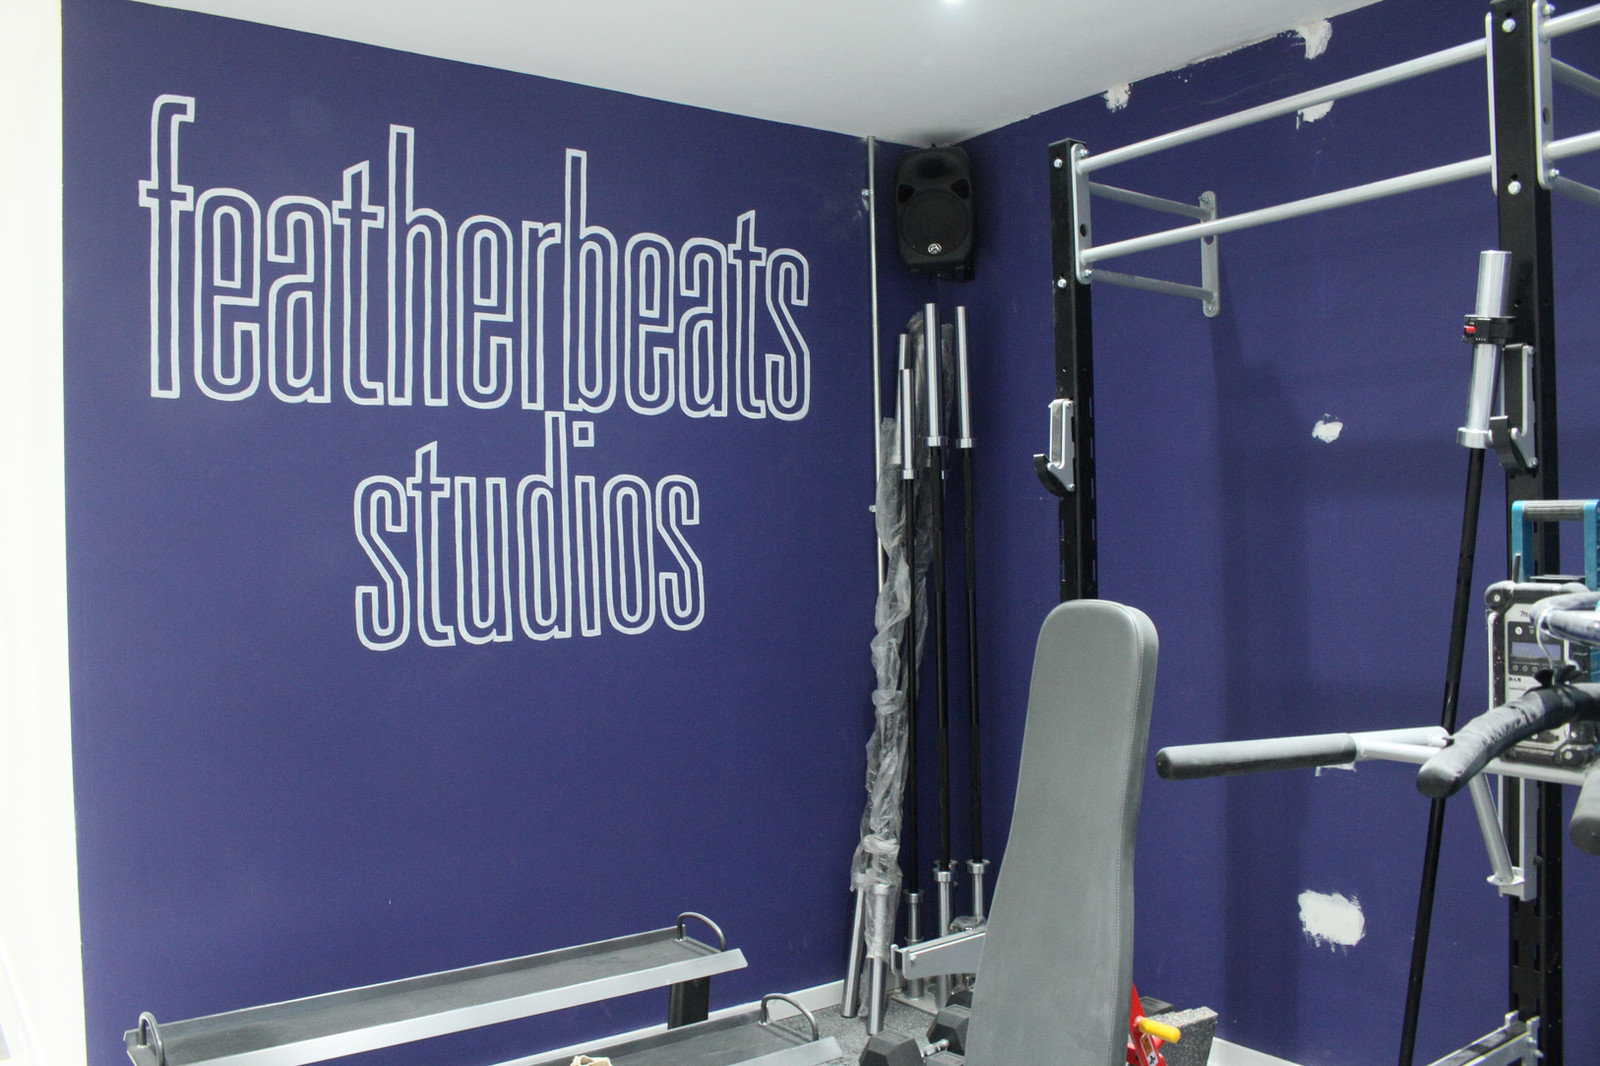 Gym logo hand painted sign on wall